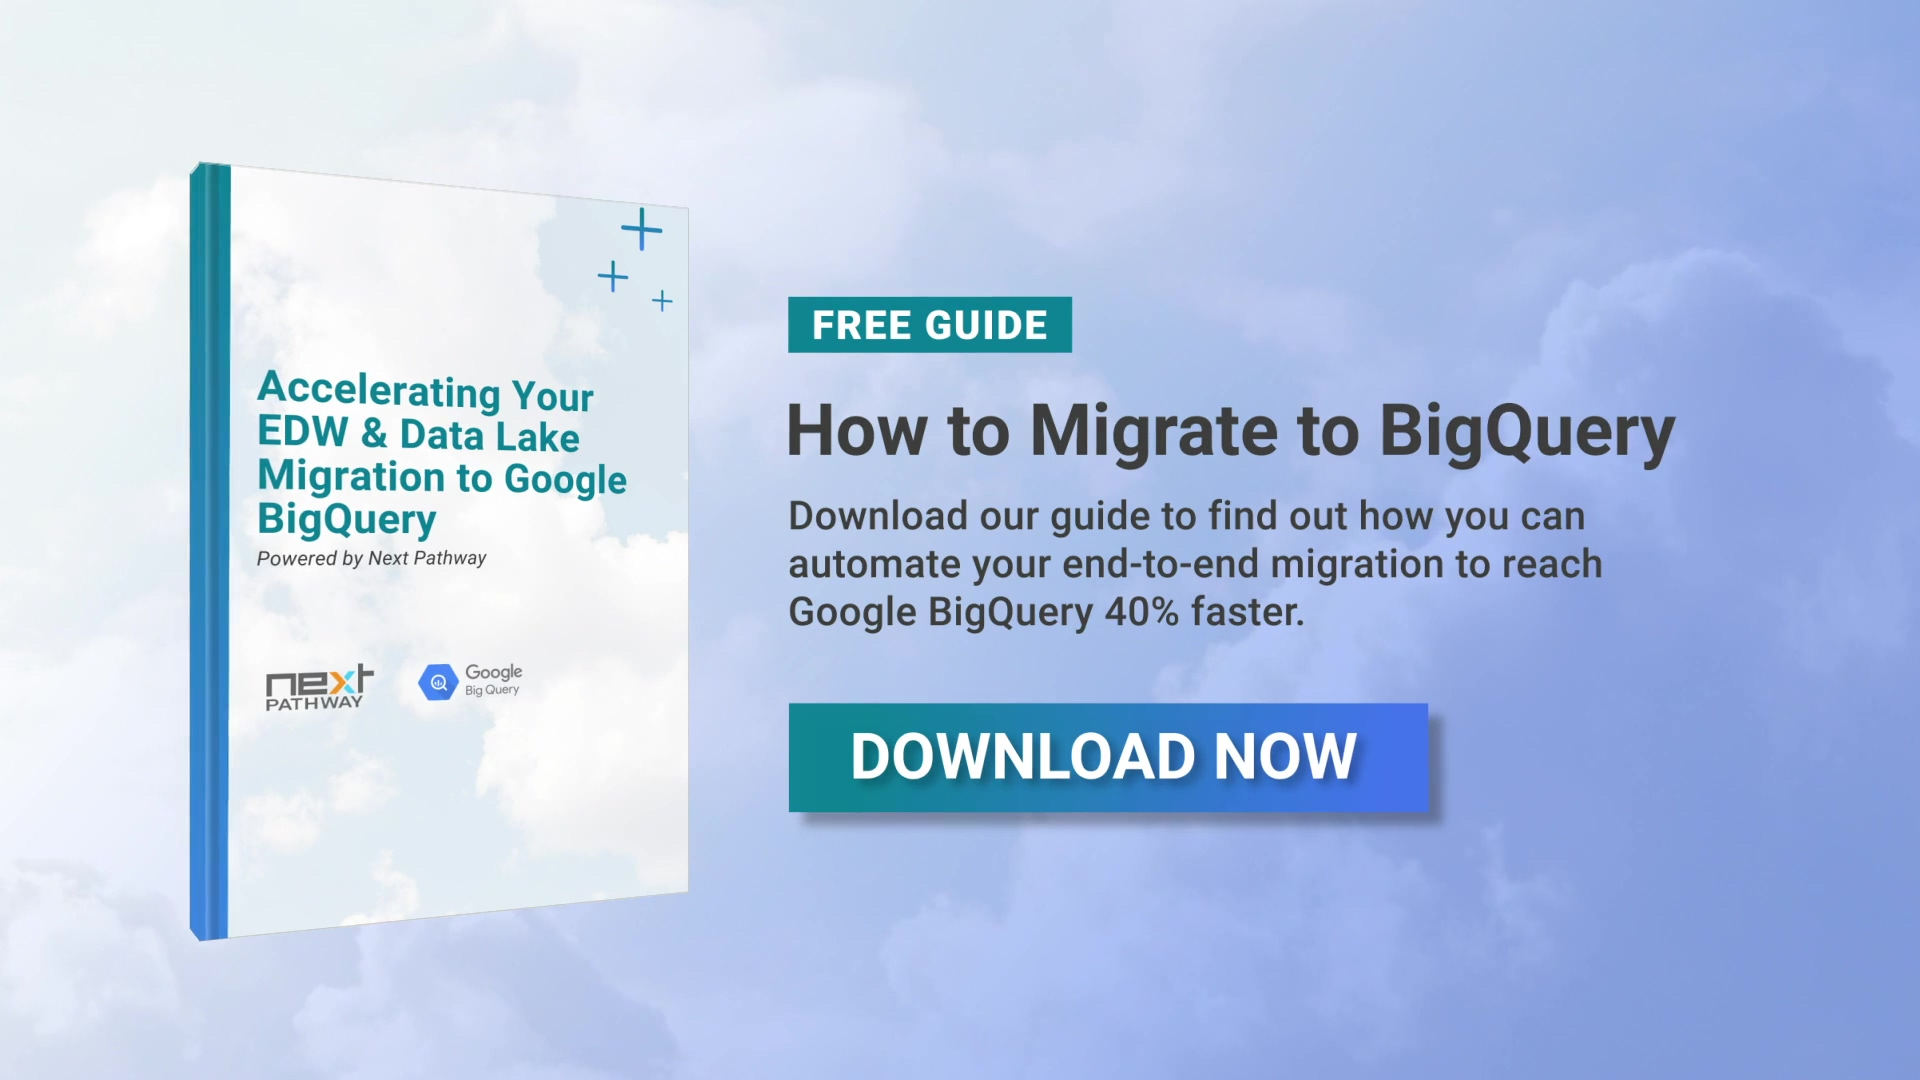 How to Migrate to BigQuery